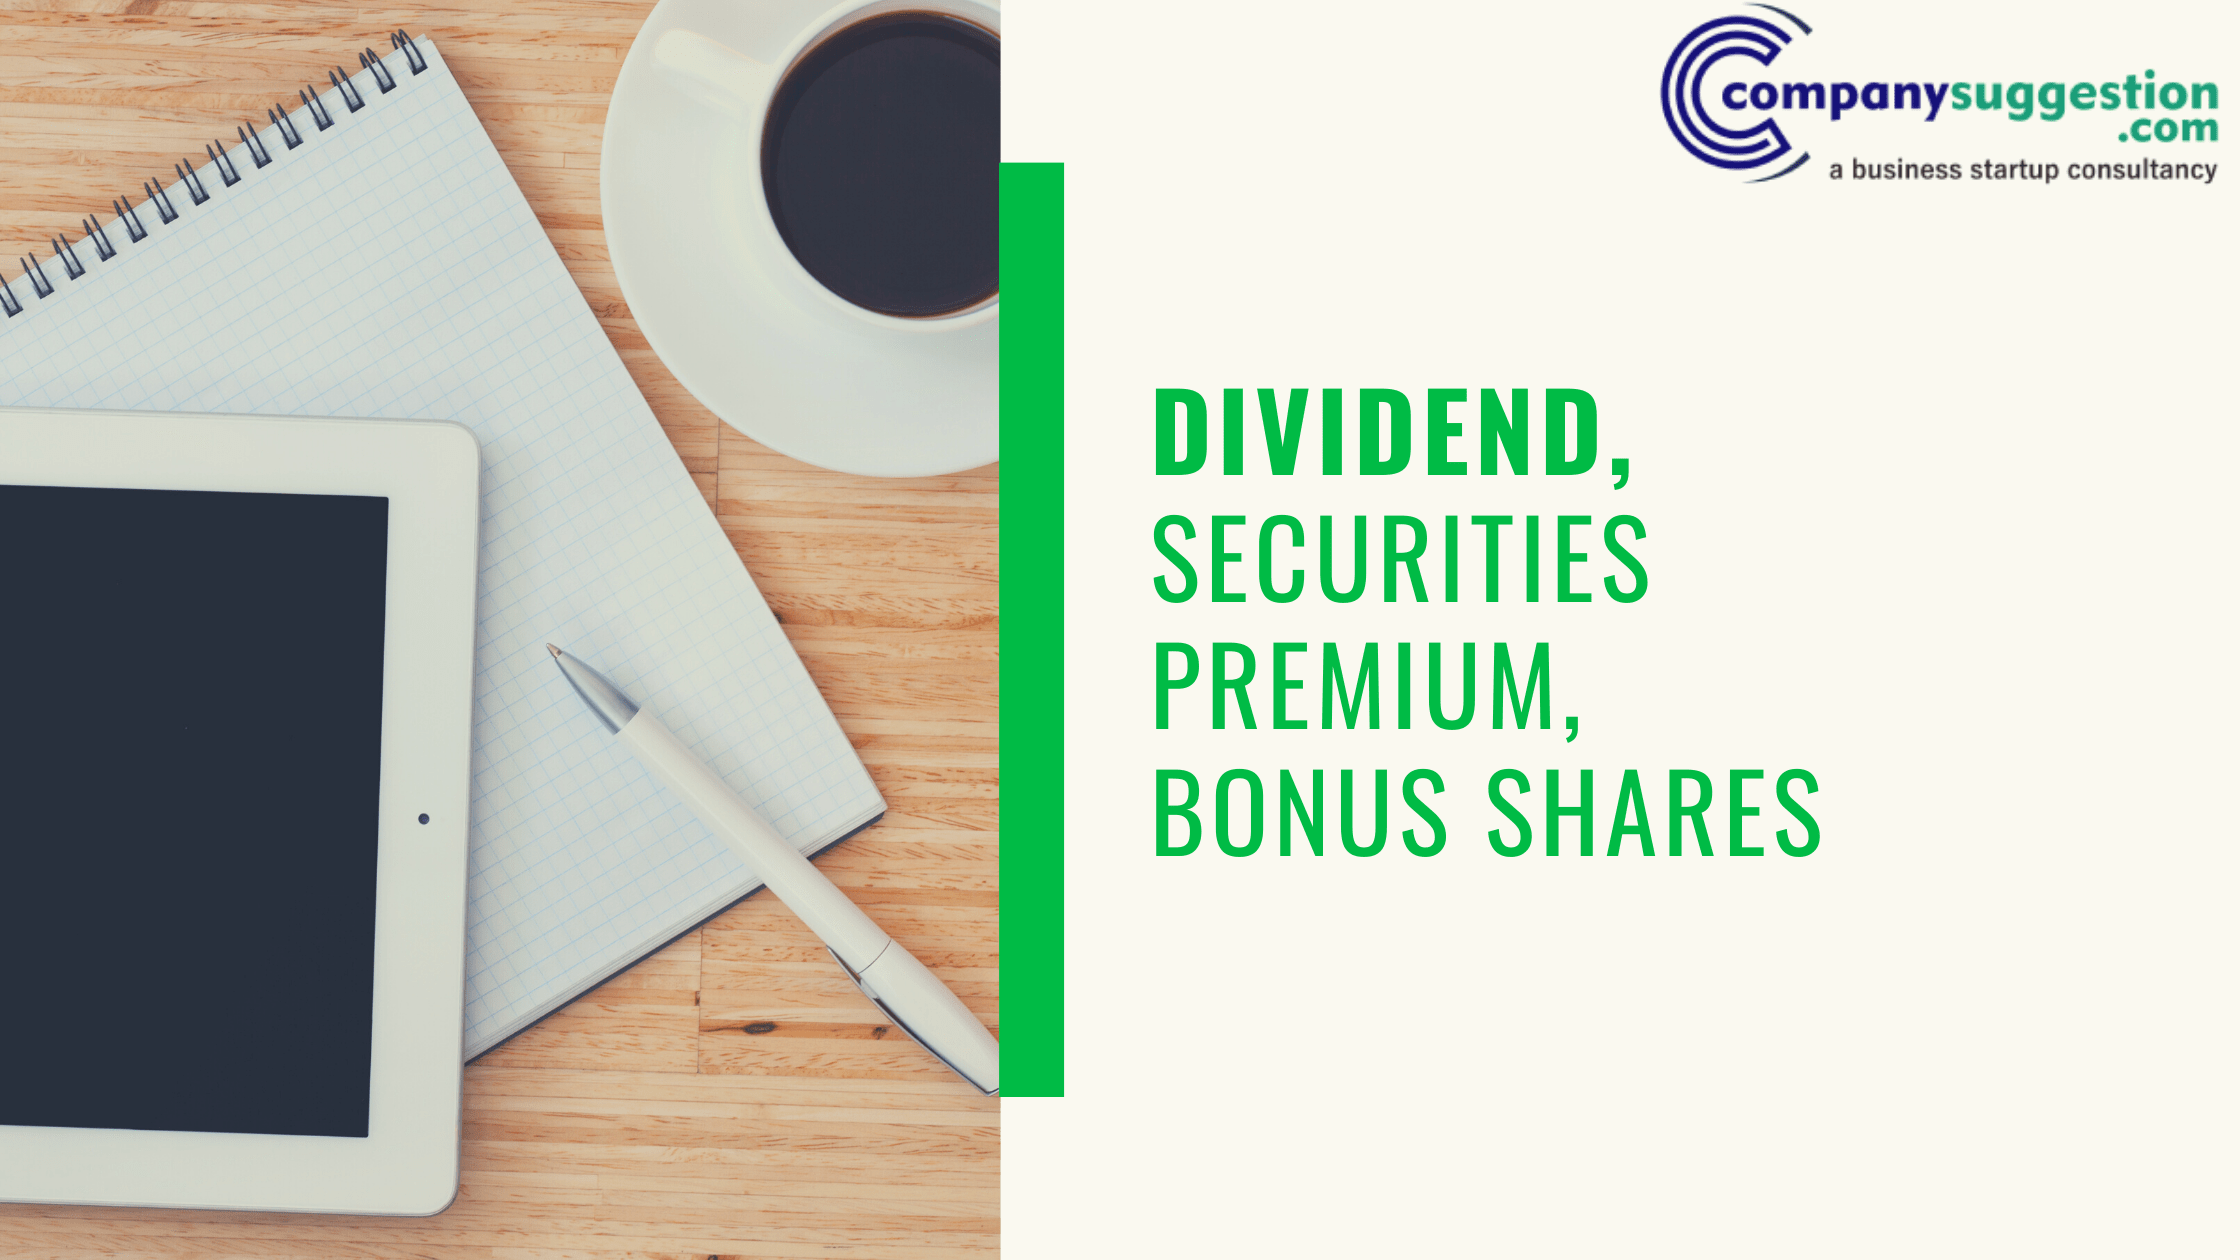 DIVIDEND, SECURITIES PREMIUM, BONUS SHARES